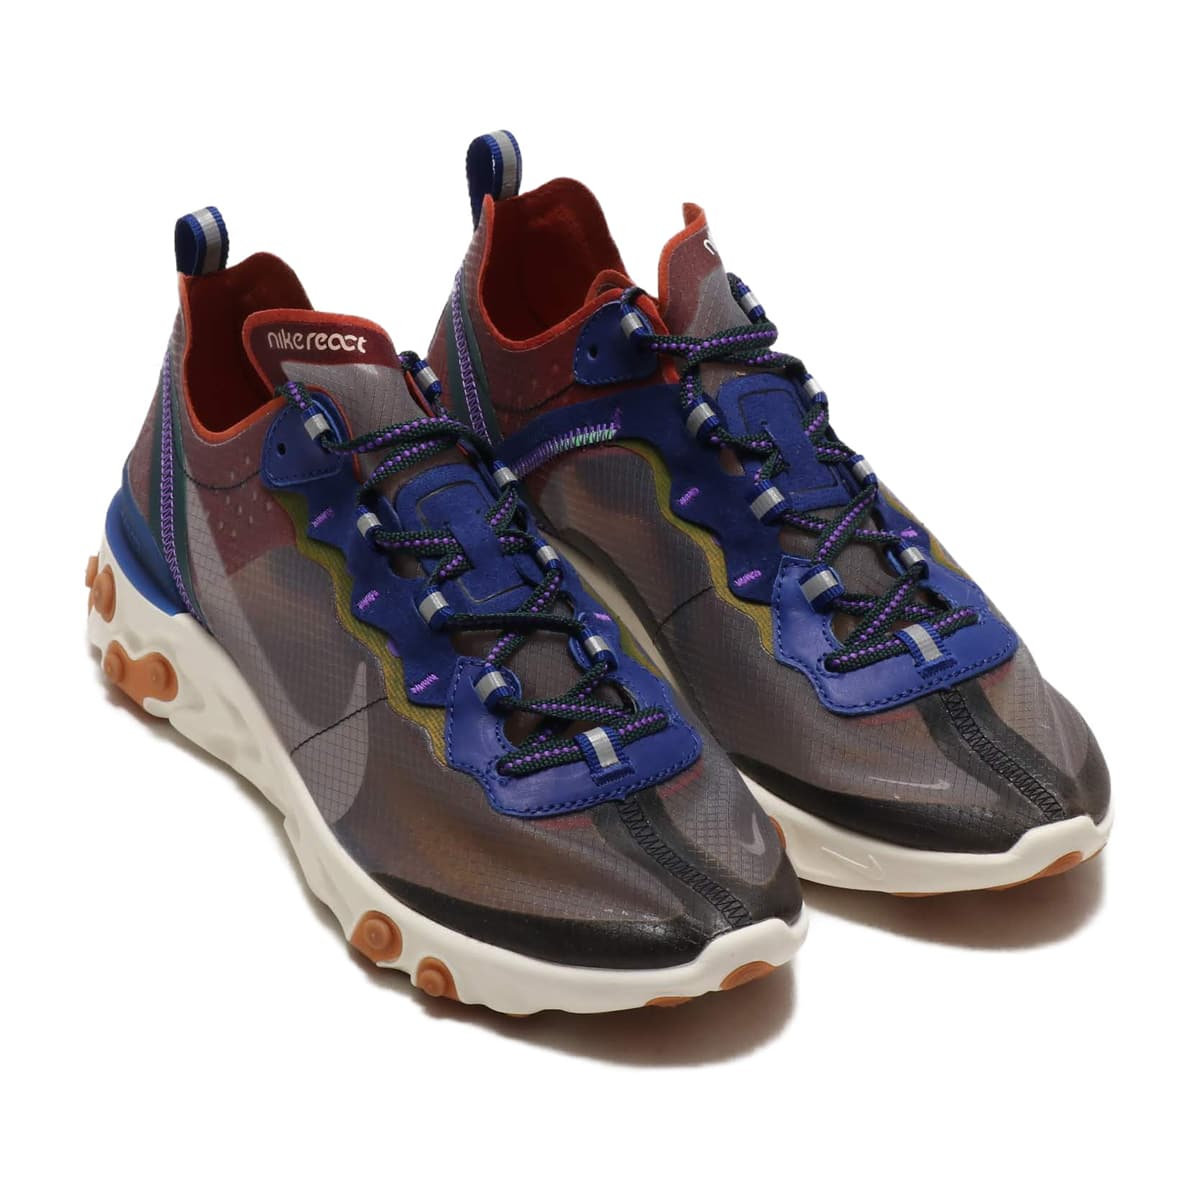 NIKE REACT ELEMENT 87 DSTY PCH/ATMSPHR GRY-DP RYL BL 19SU-S_photo_large